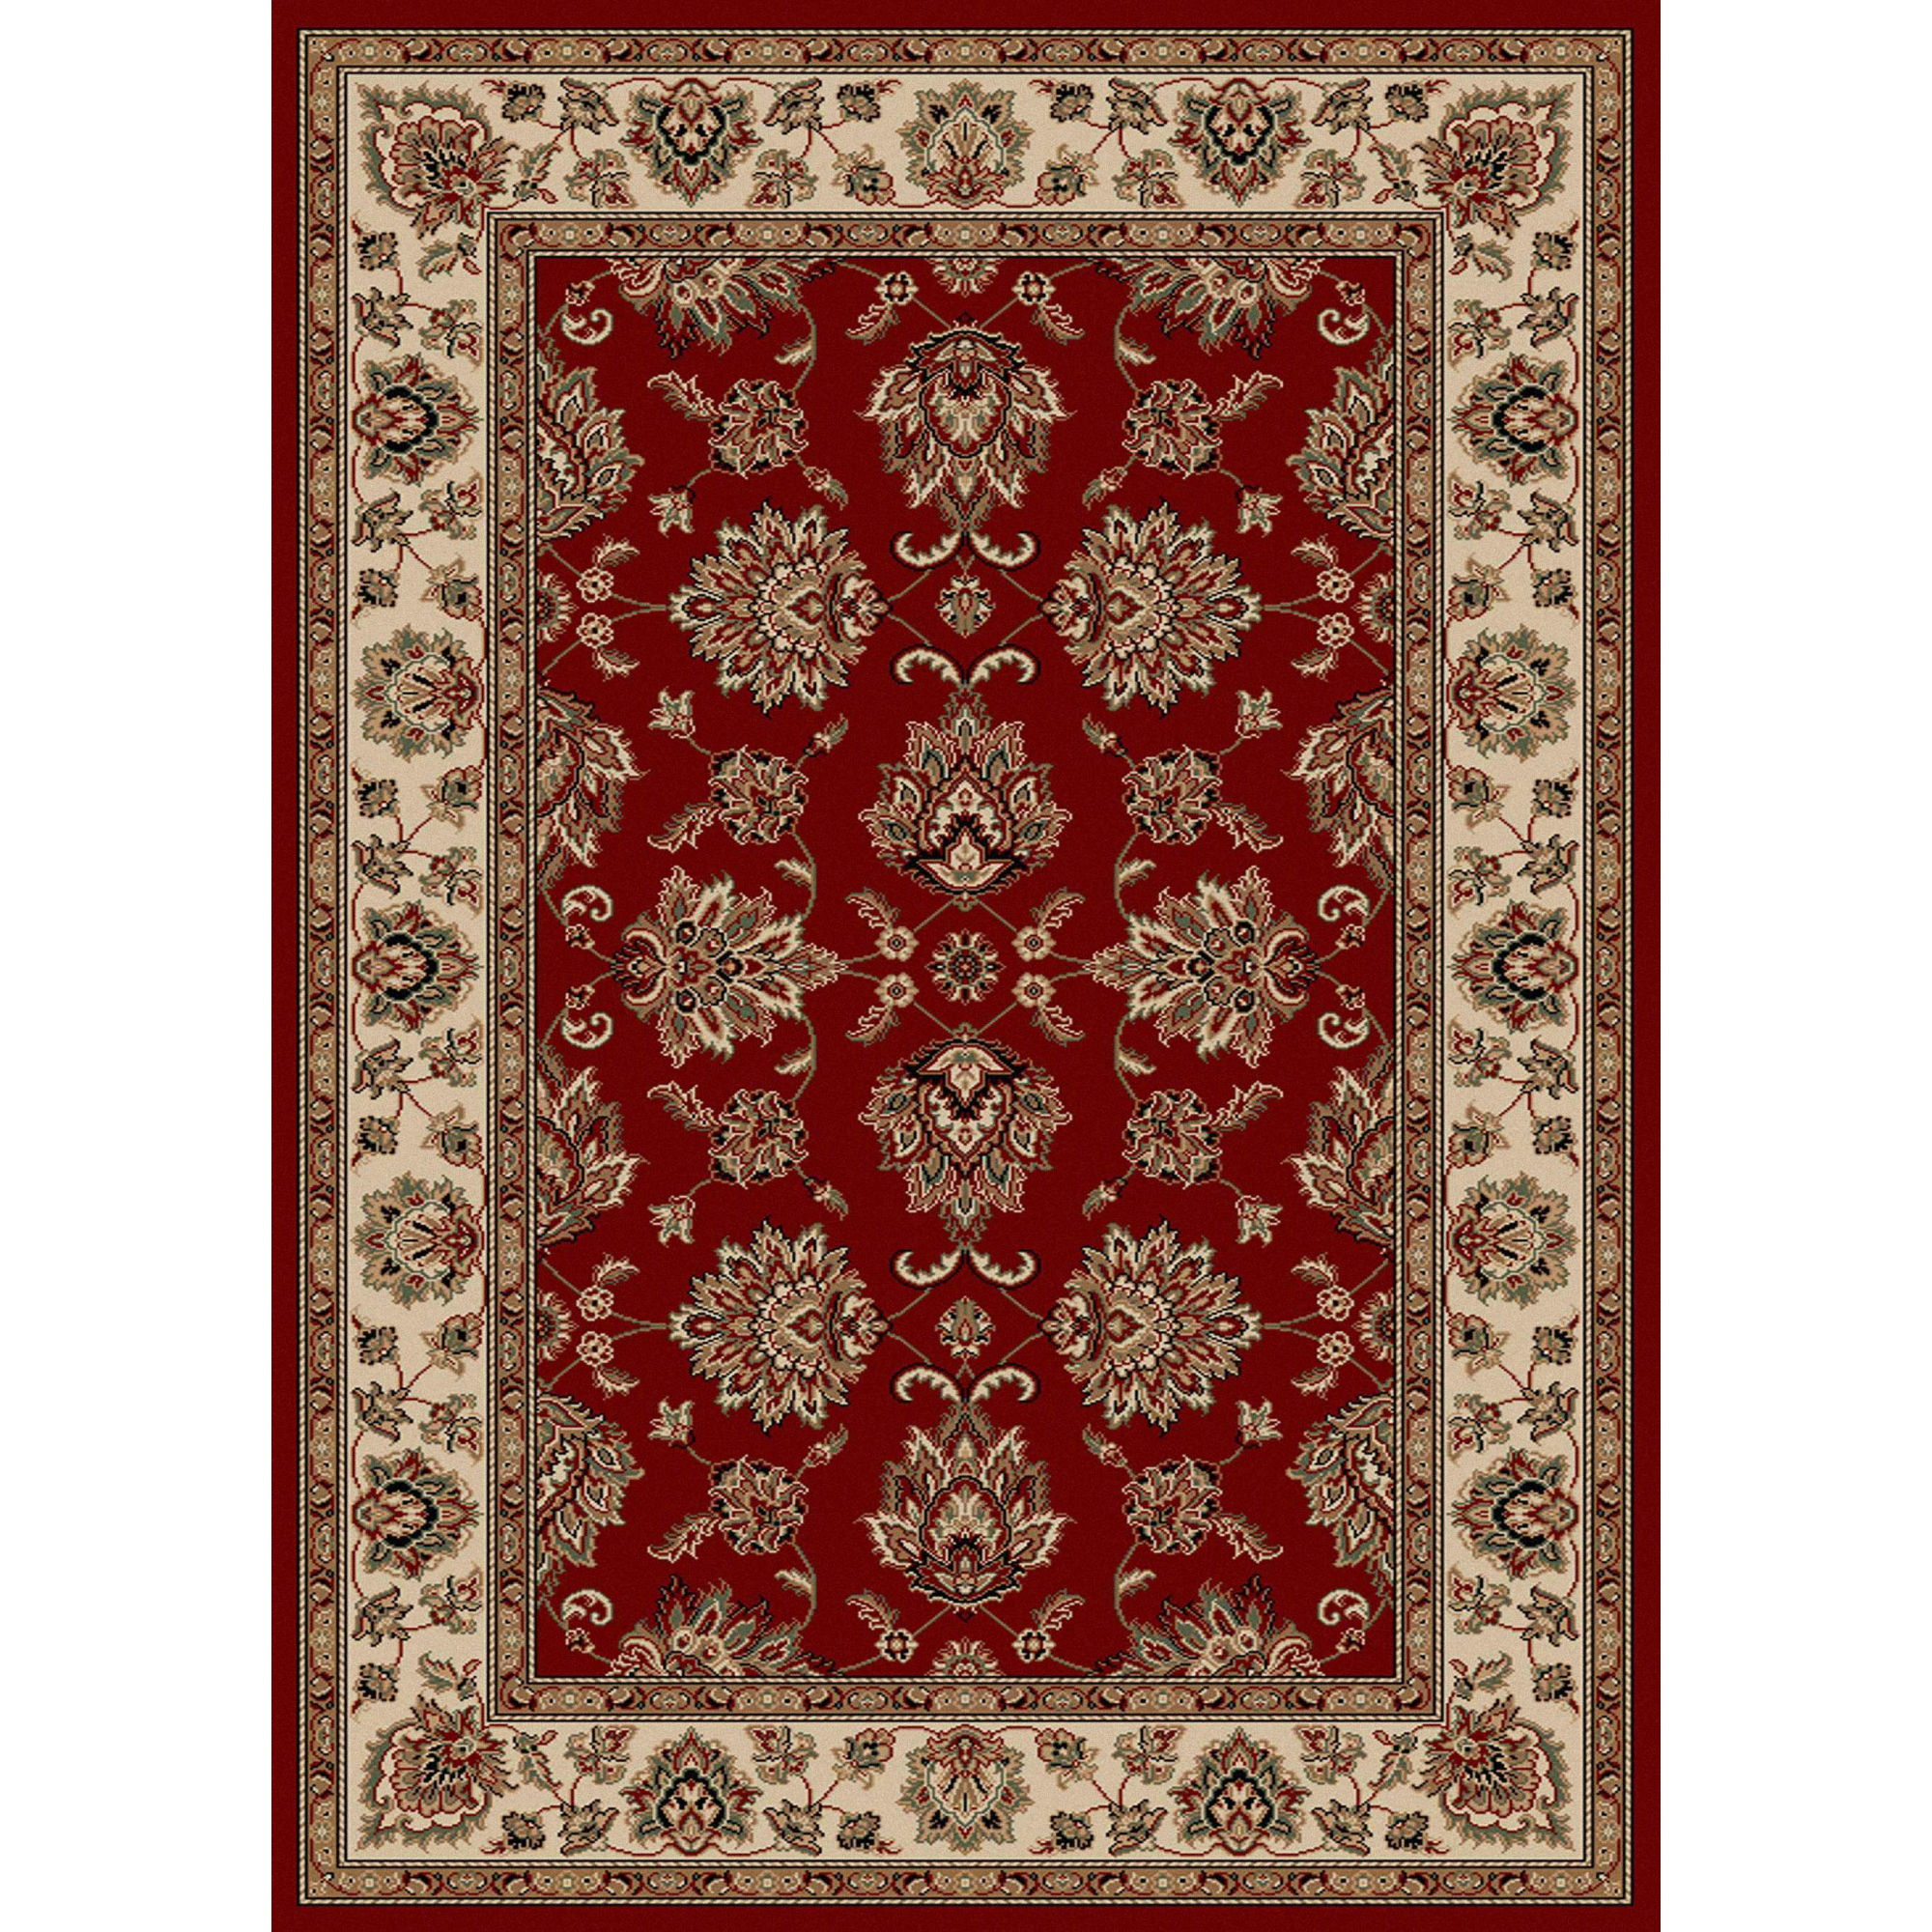 Oriental Carpet Ideas